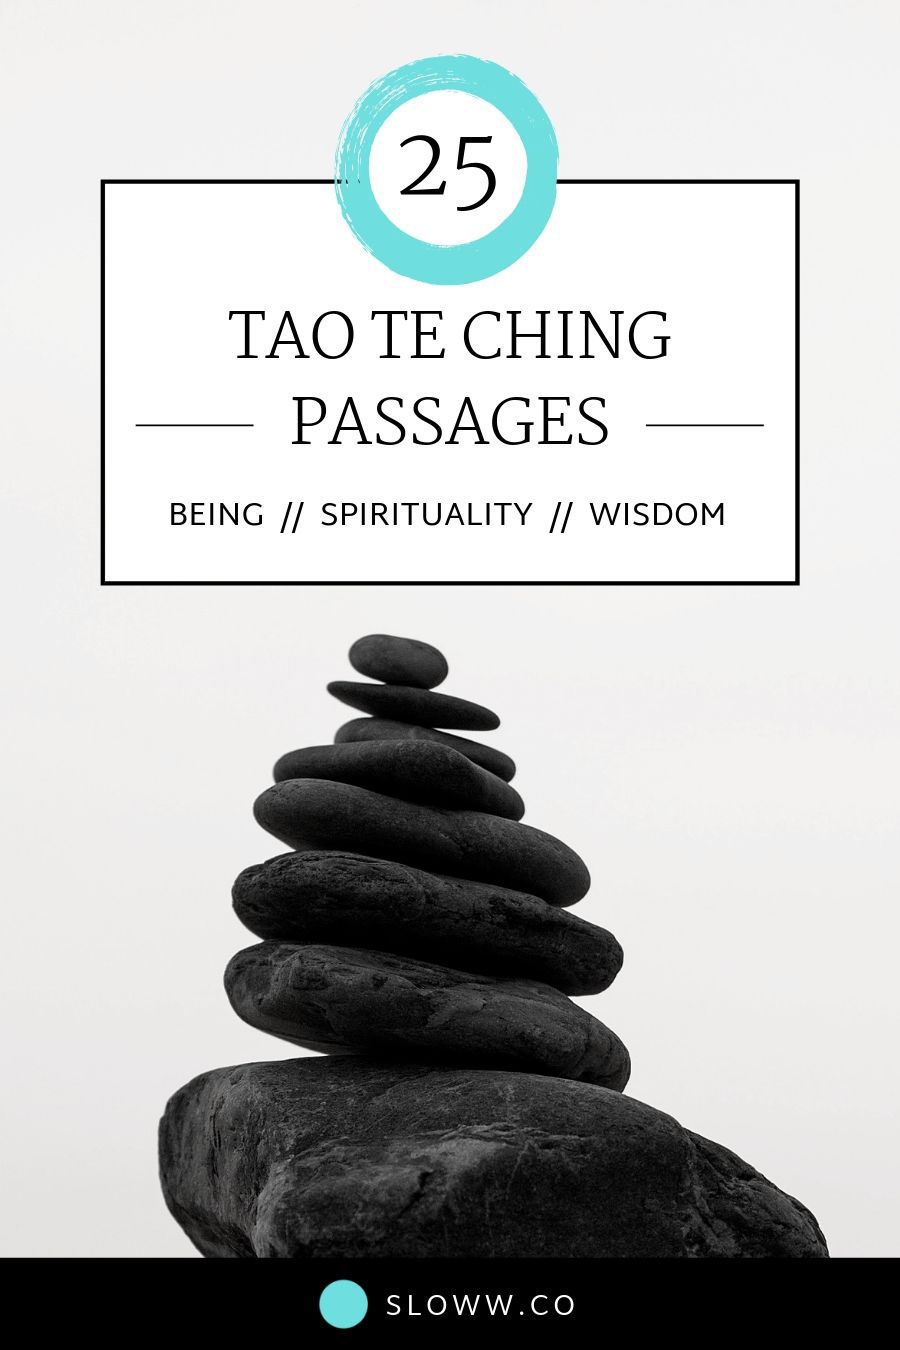 Sloww Tao Te Ching Lao Tzu Quotes Infographic